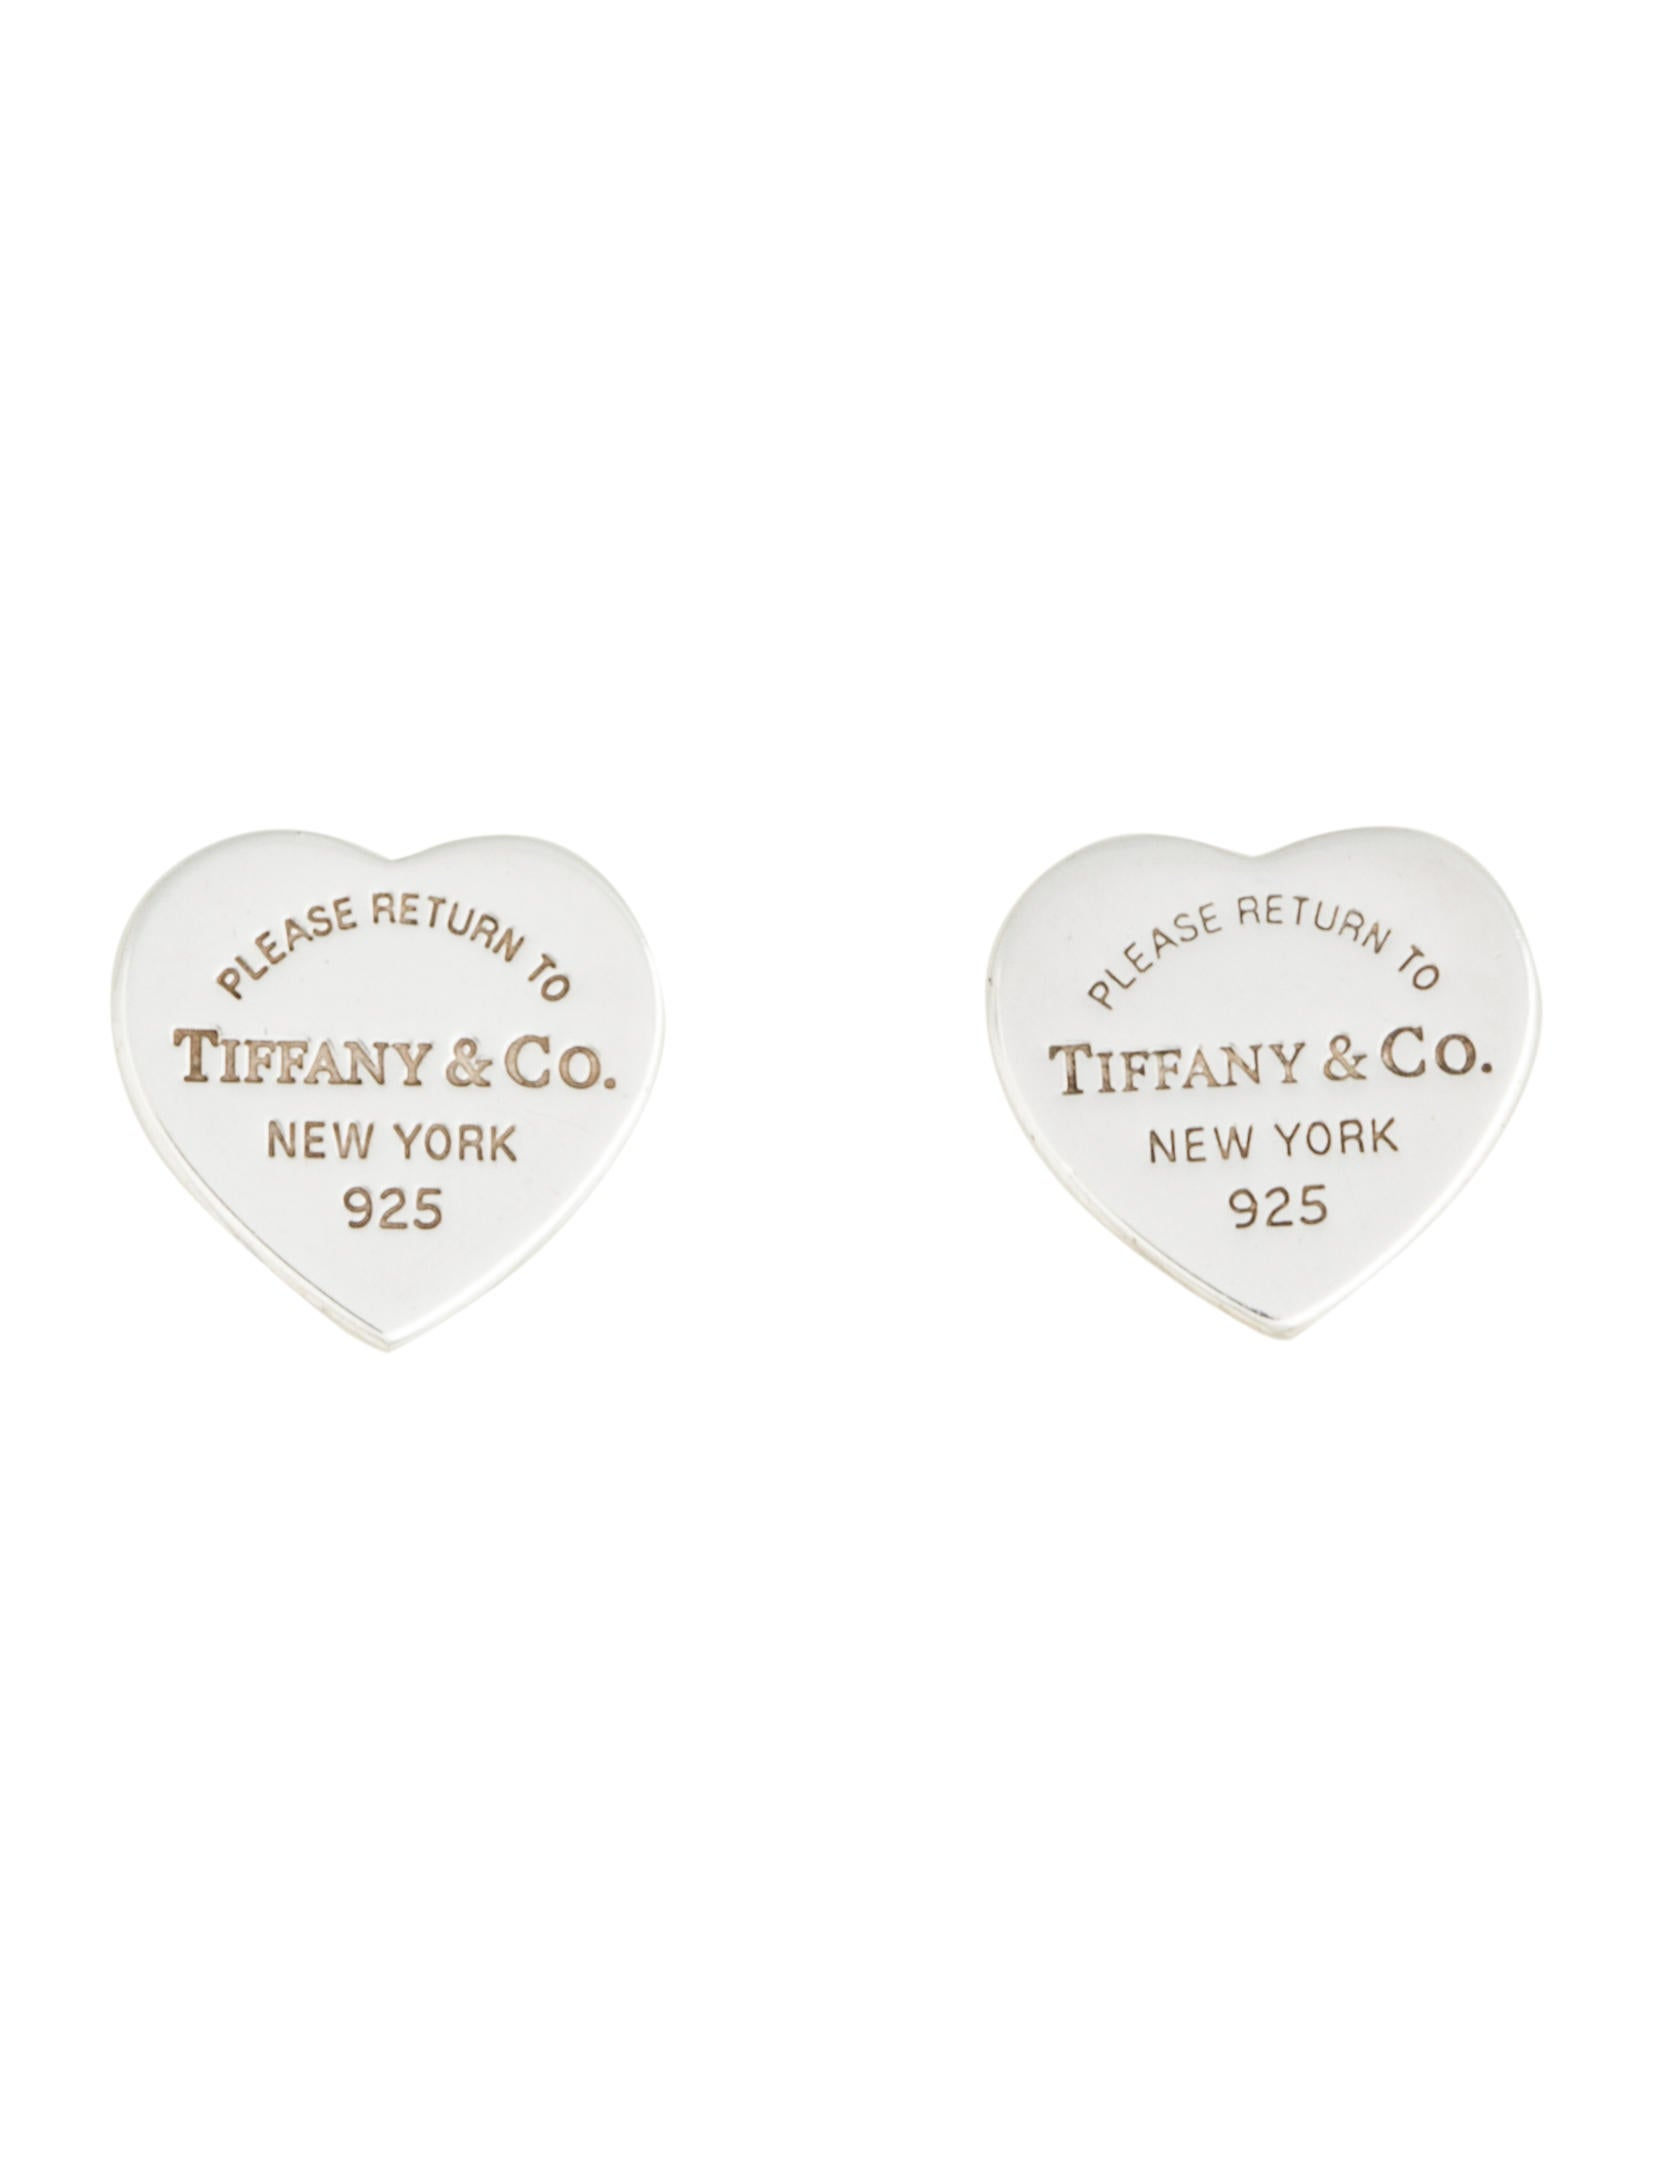 03e8331b3 Tiffany & Co. Mini Heart Tag Earrings - Earrings - TIF52555 | The RealReal